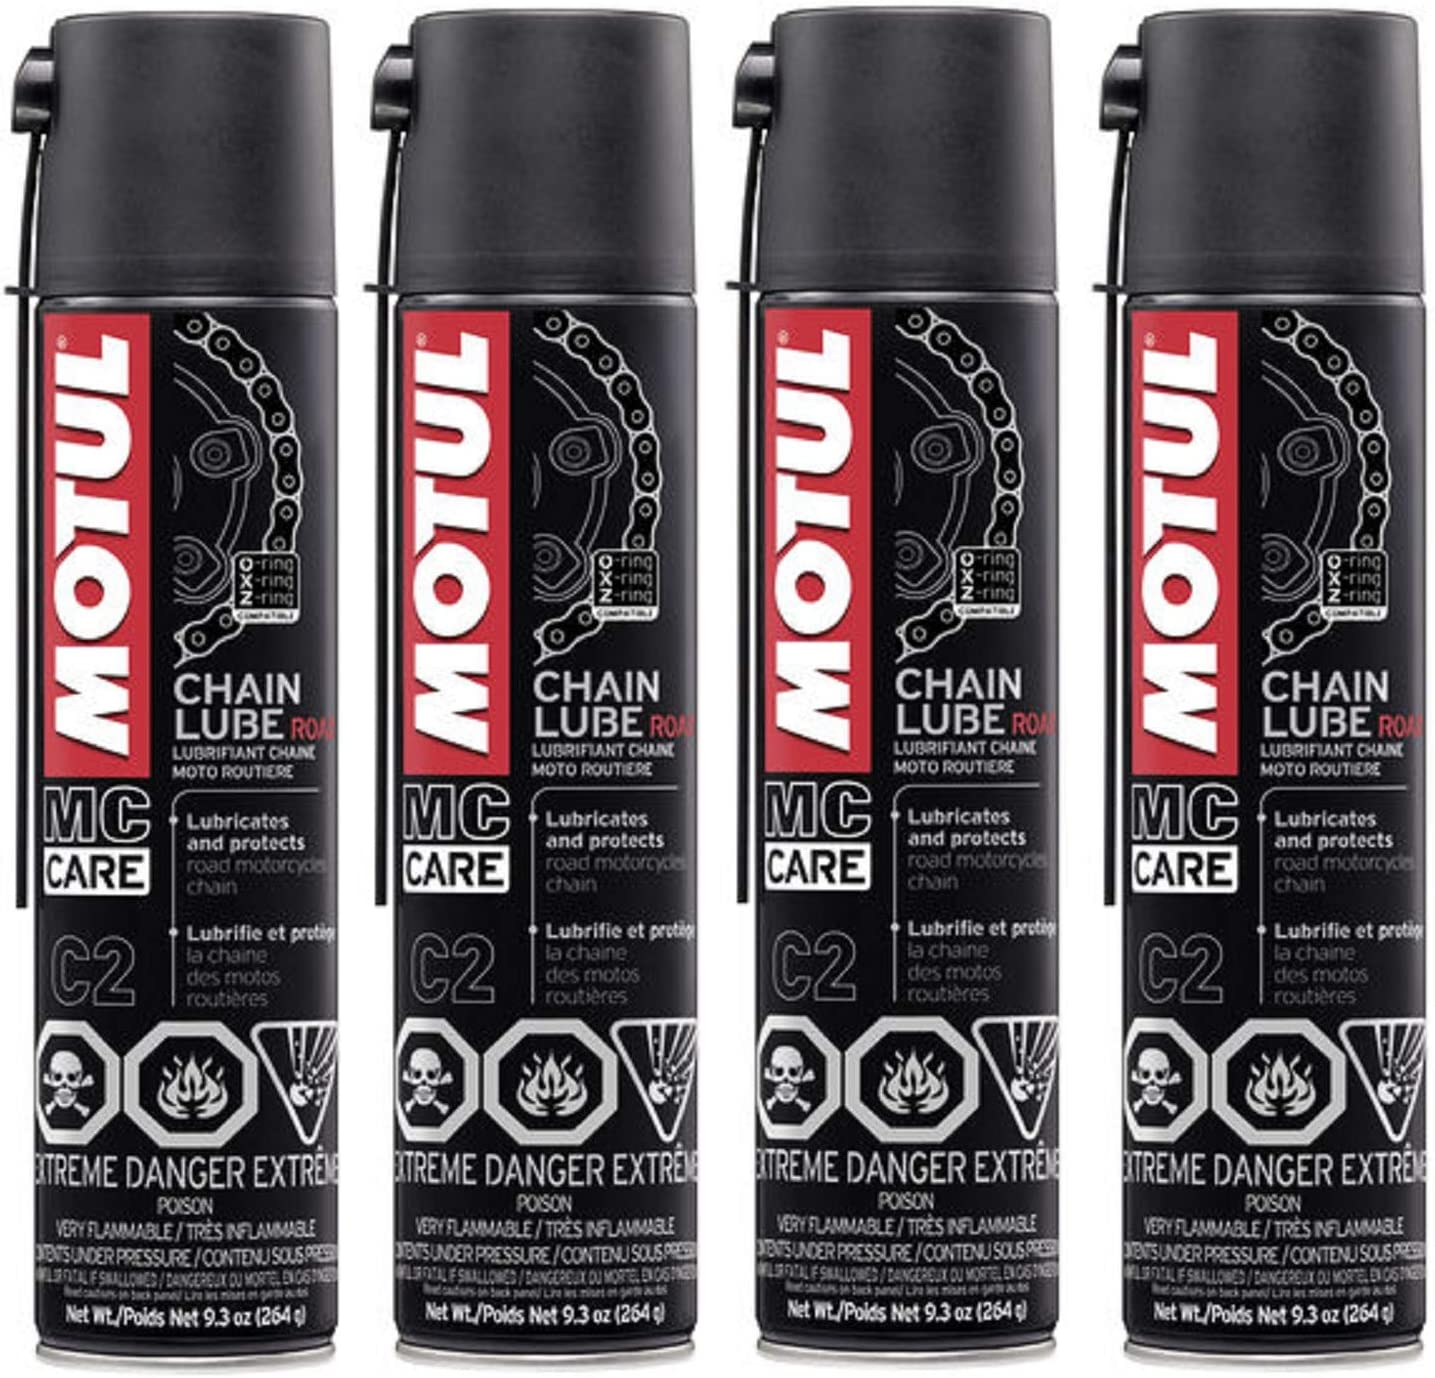 Motul 103244 Set of 4 C2 Chain Lube Road 9.3-Ounce Cans